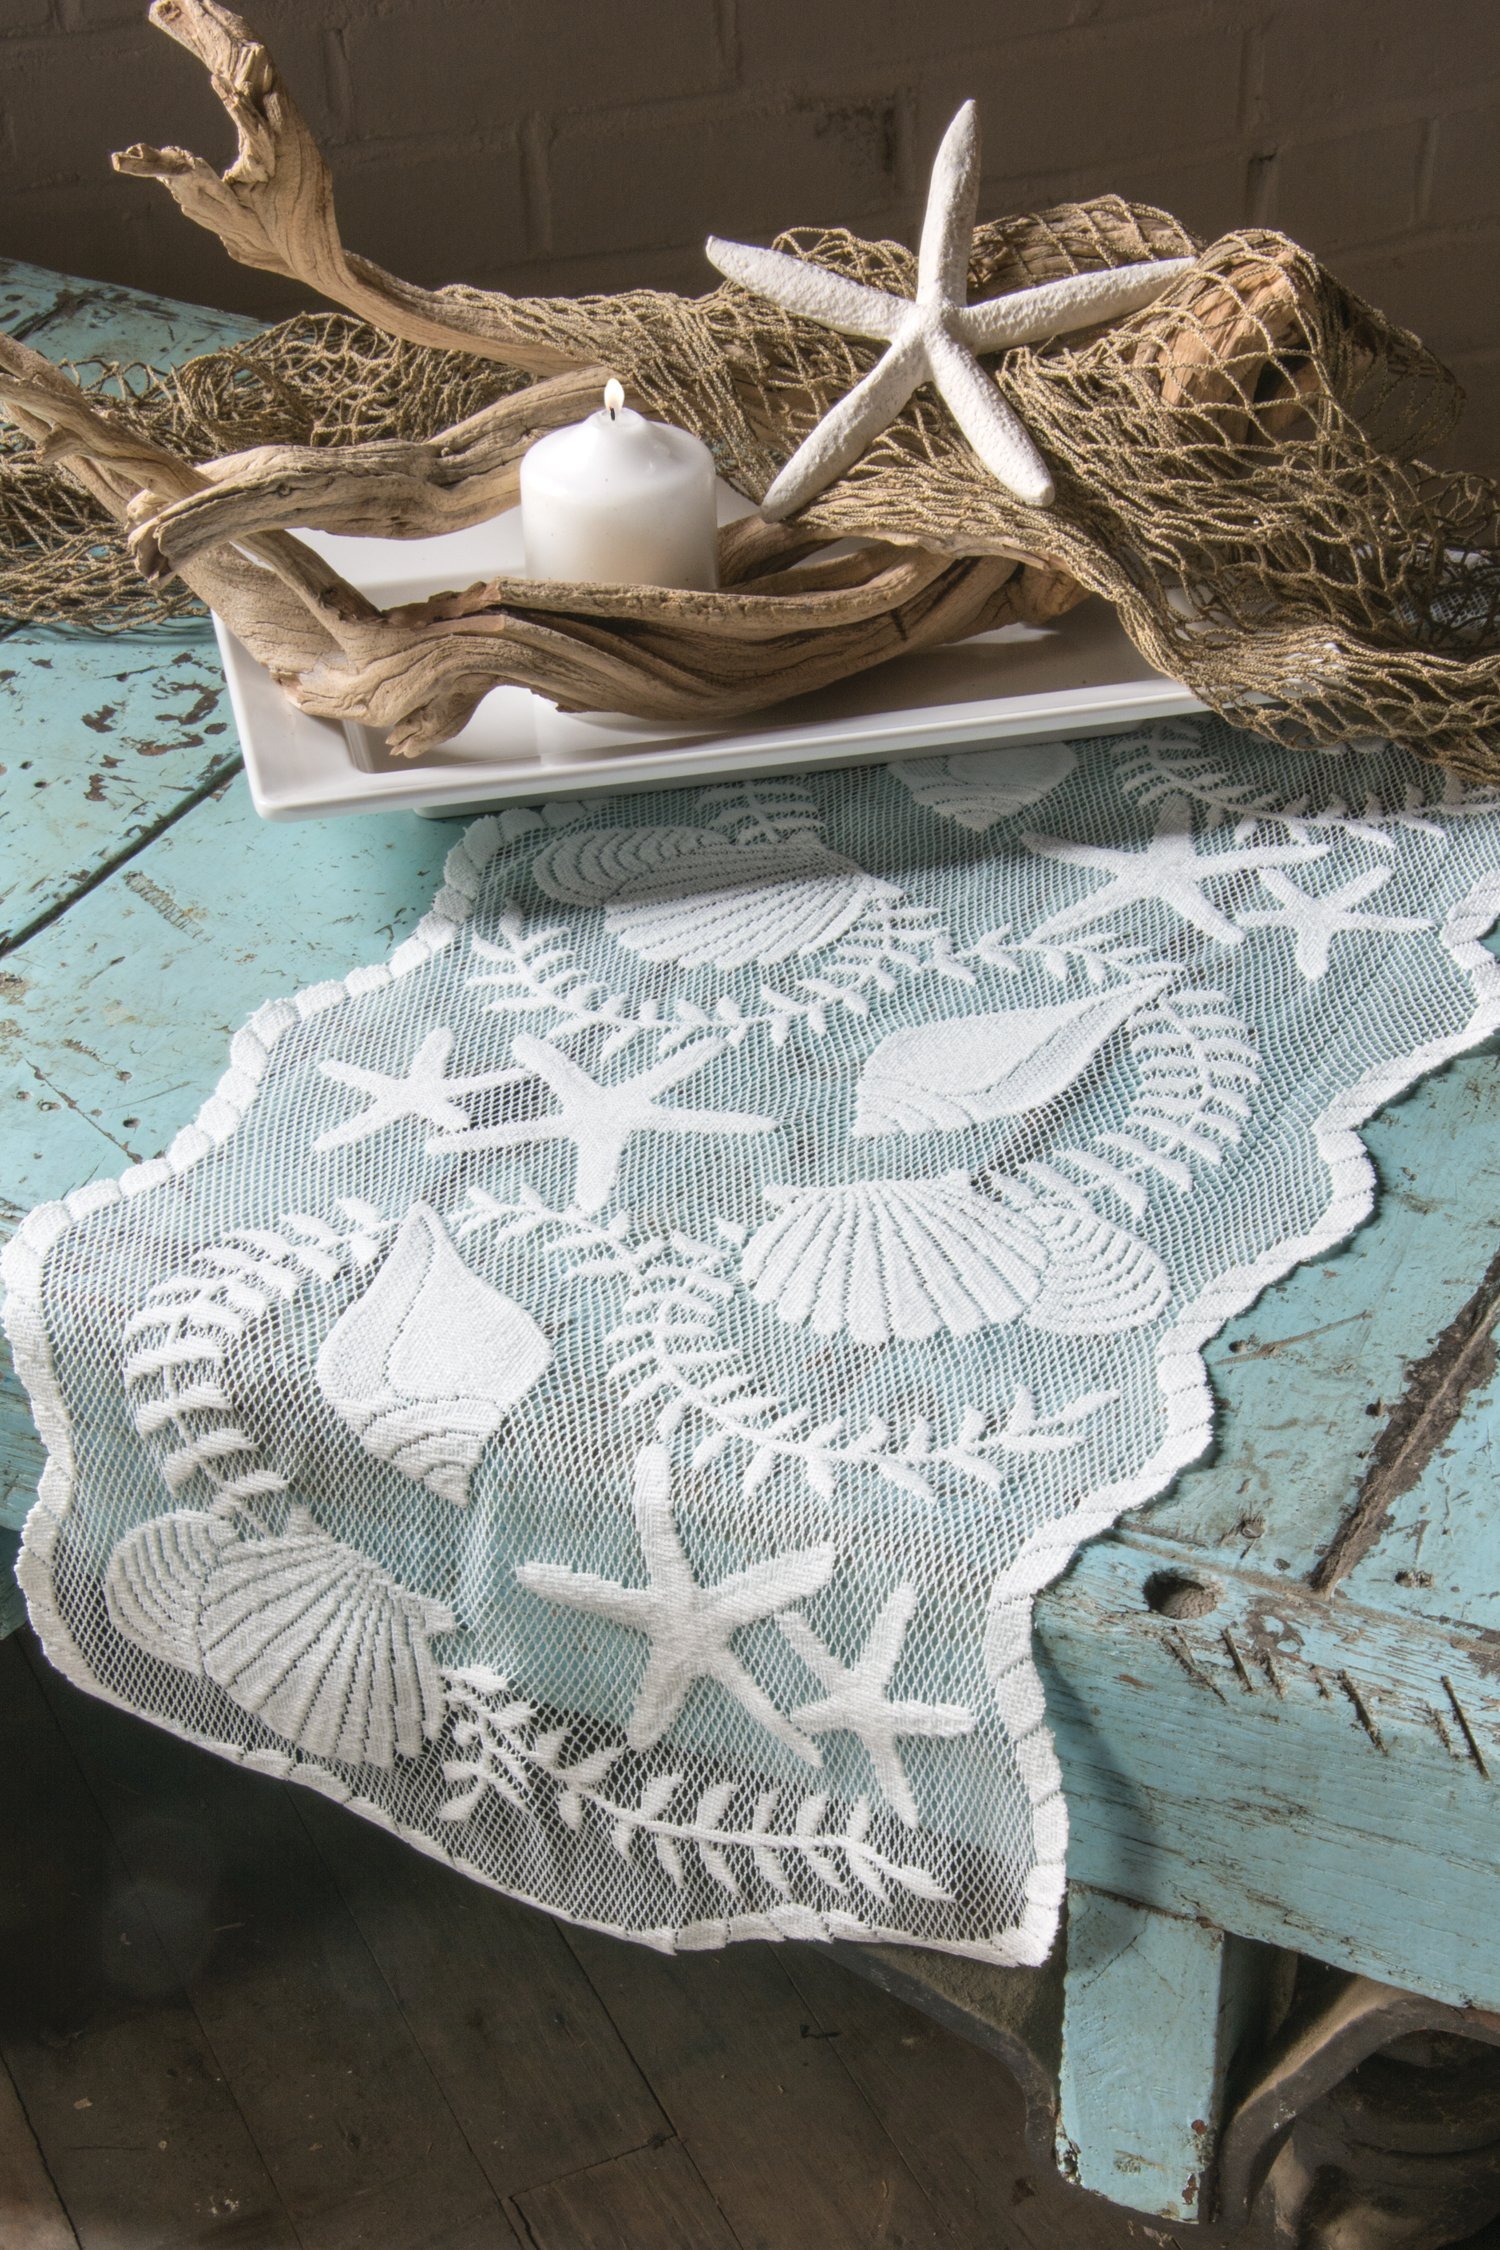 Heritage Lace Tidepool Table Runner, 14 by 40-Inch, White by Heritage Lace (Image #2)